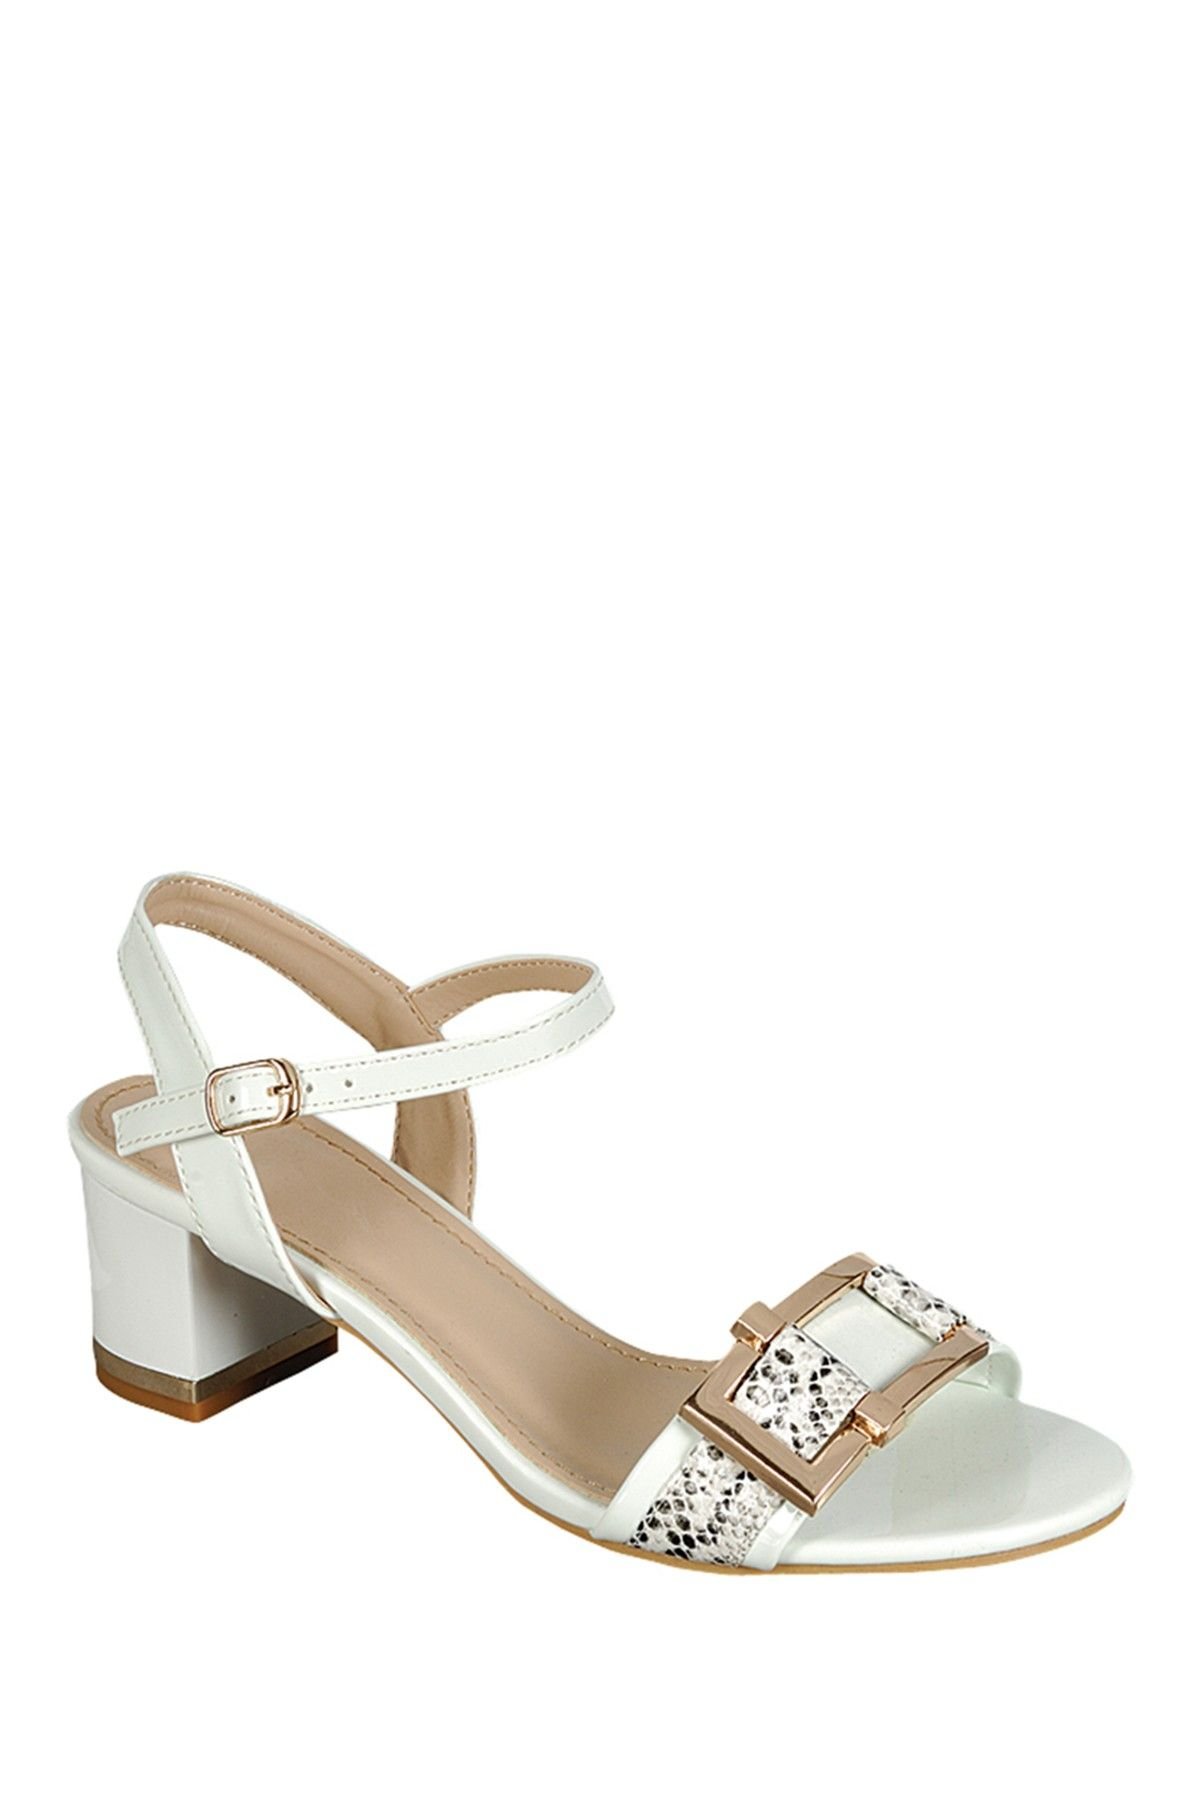 Raine Sandal by Pinky on @nordstrom_rack